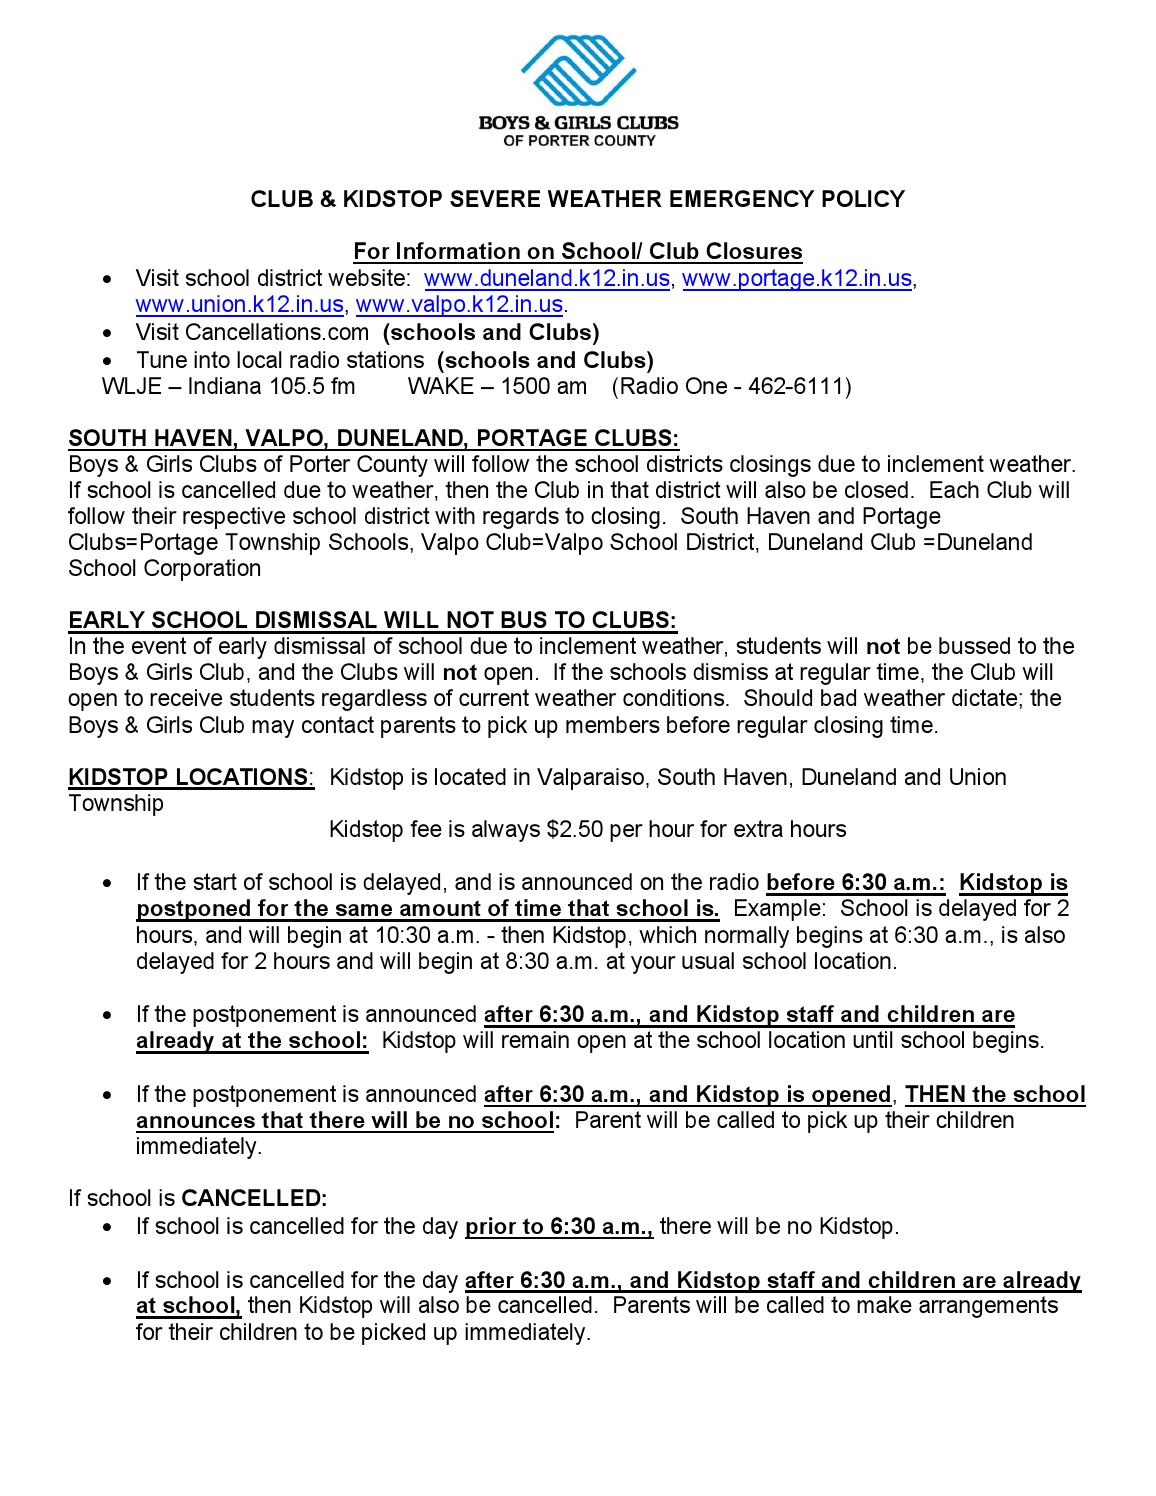 Severe Weather Policy by Boys & Girls Clubs of Porter County